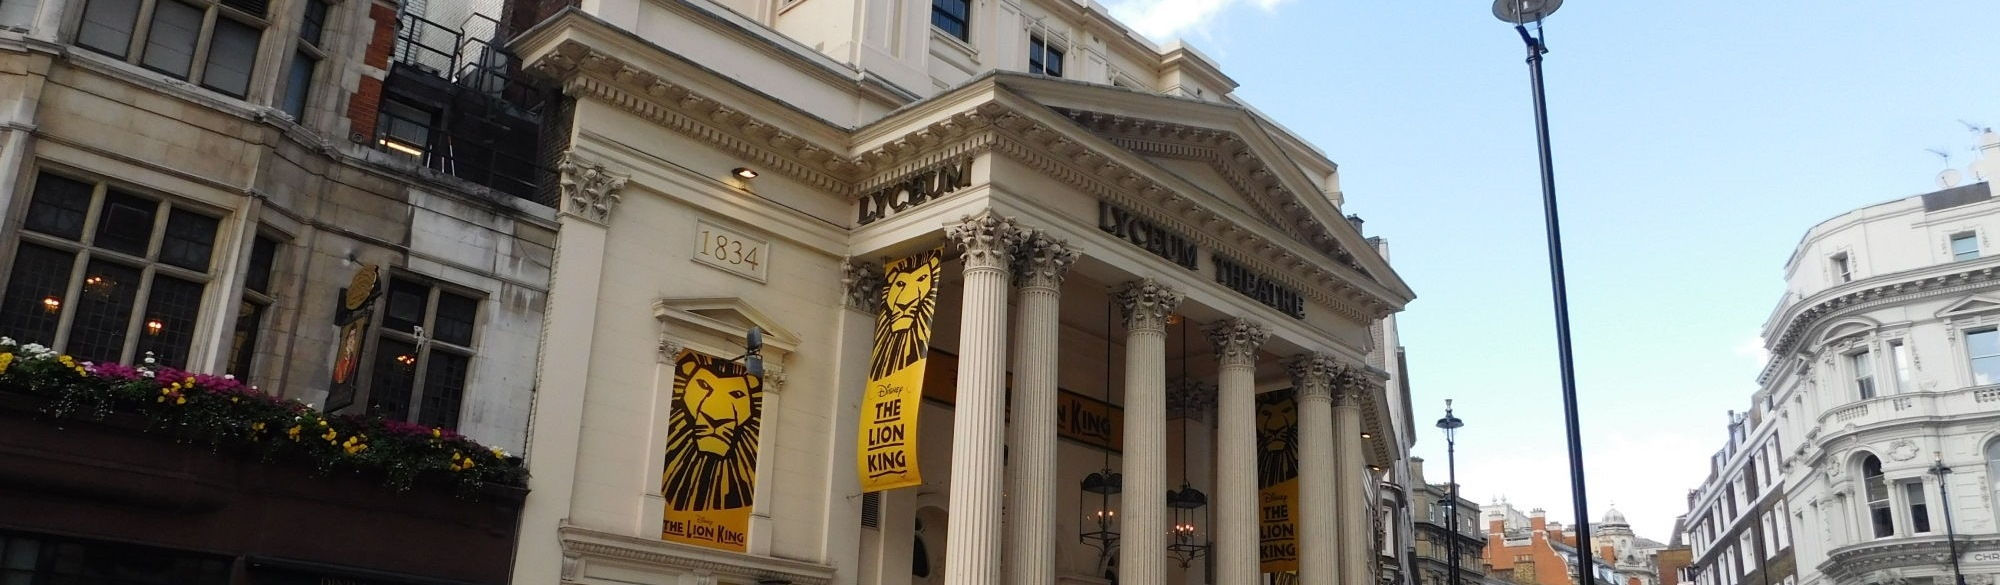 Hotels Near Lion King Theatre London